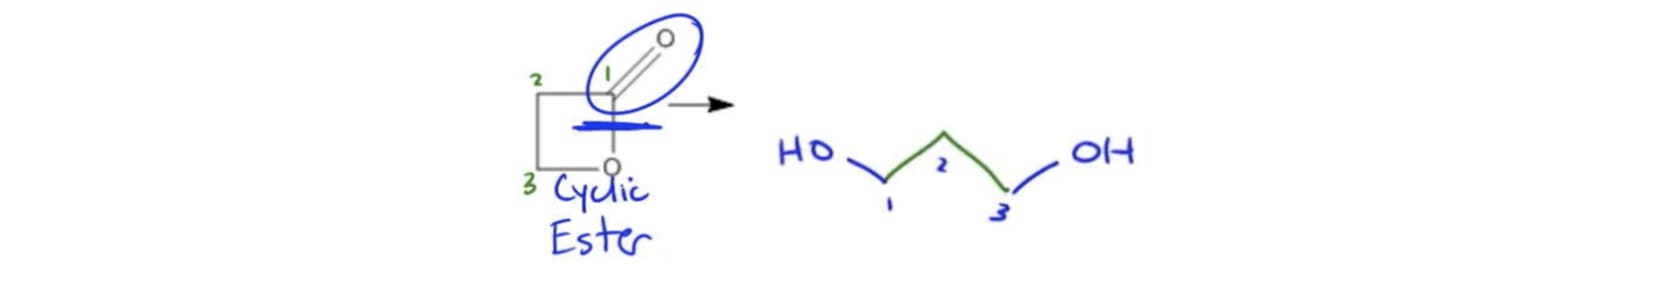 Diols via Reduction of Cyclic Esters